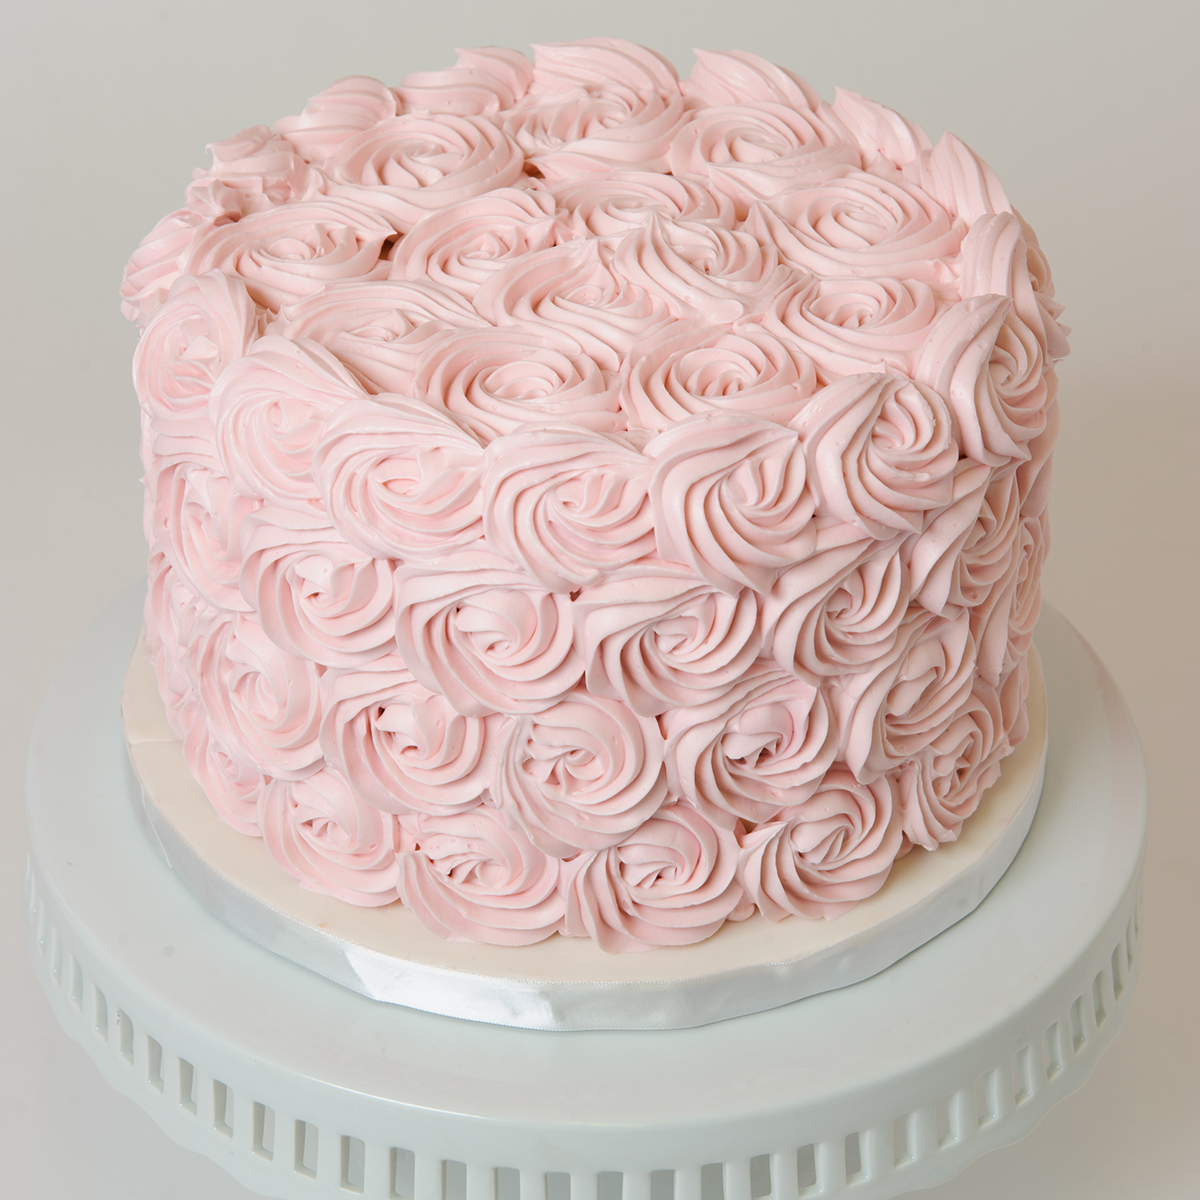 Piped Rosettes Cake - Elysia Root Cakes